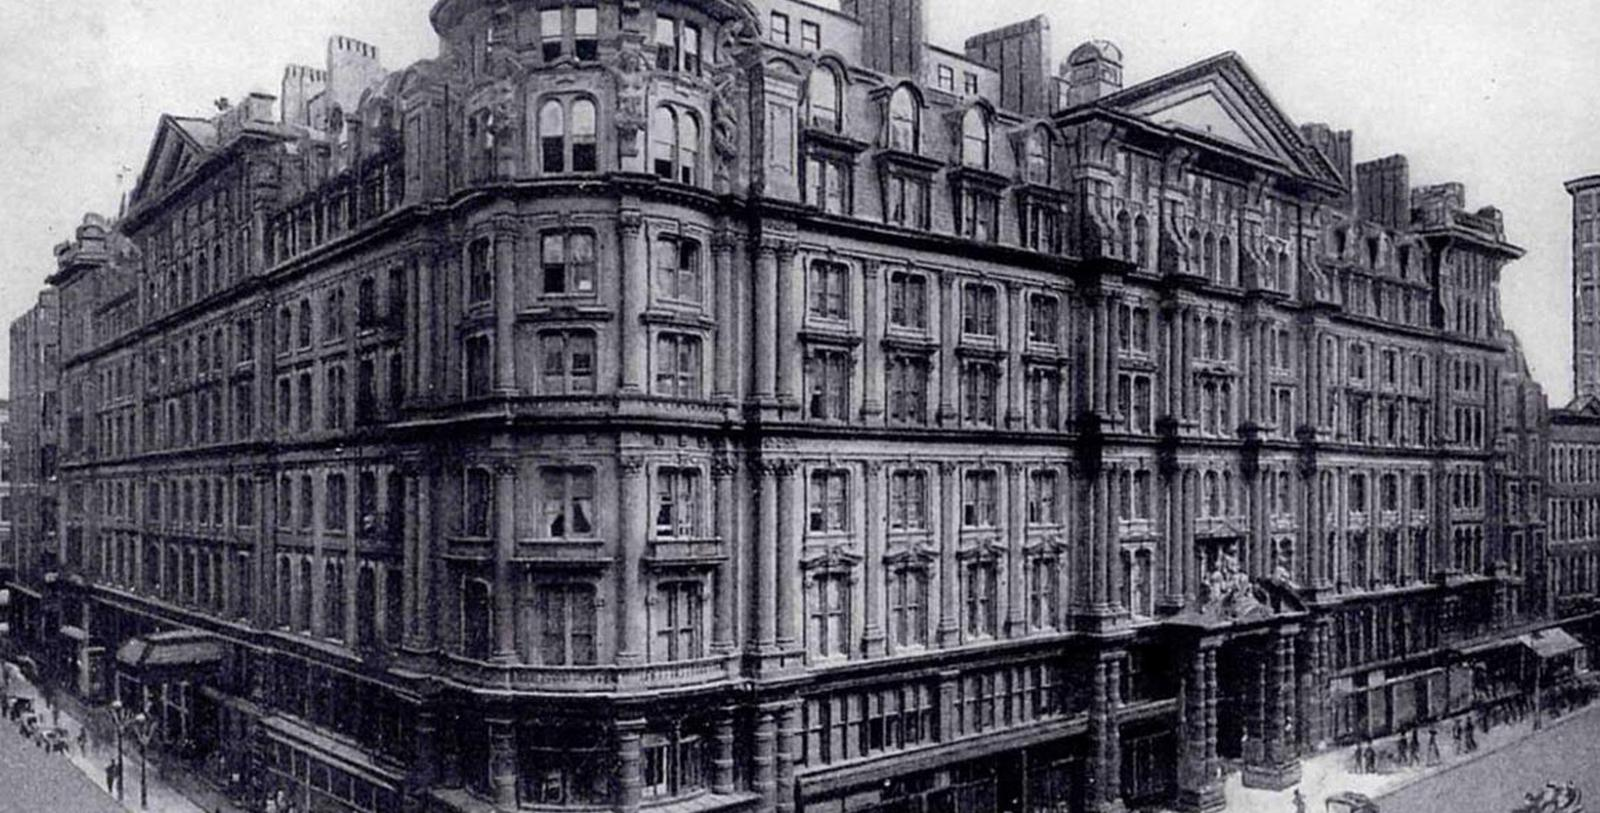 Historic image of Exterior of Palmer House®, A Hilton Hotel, Member of Historic Hotels of America, in Chicago, Illinois, Discover